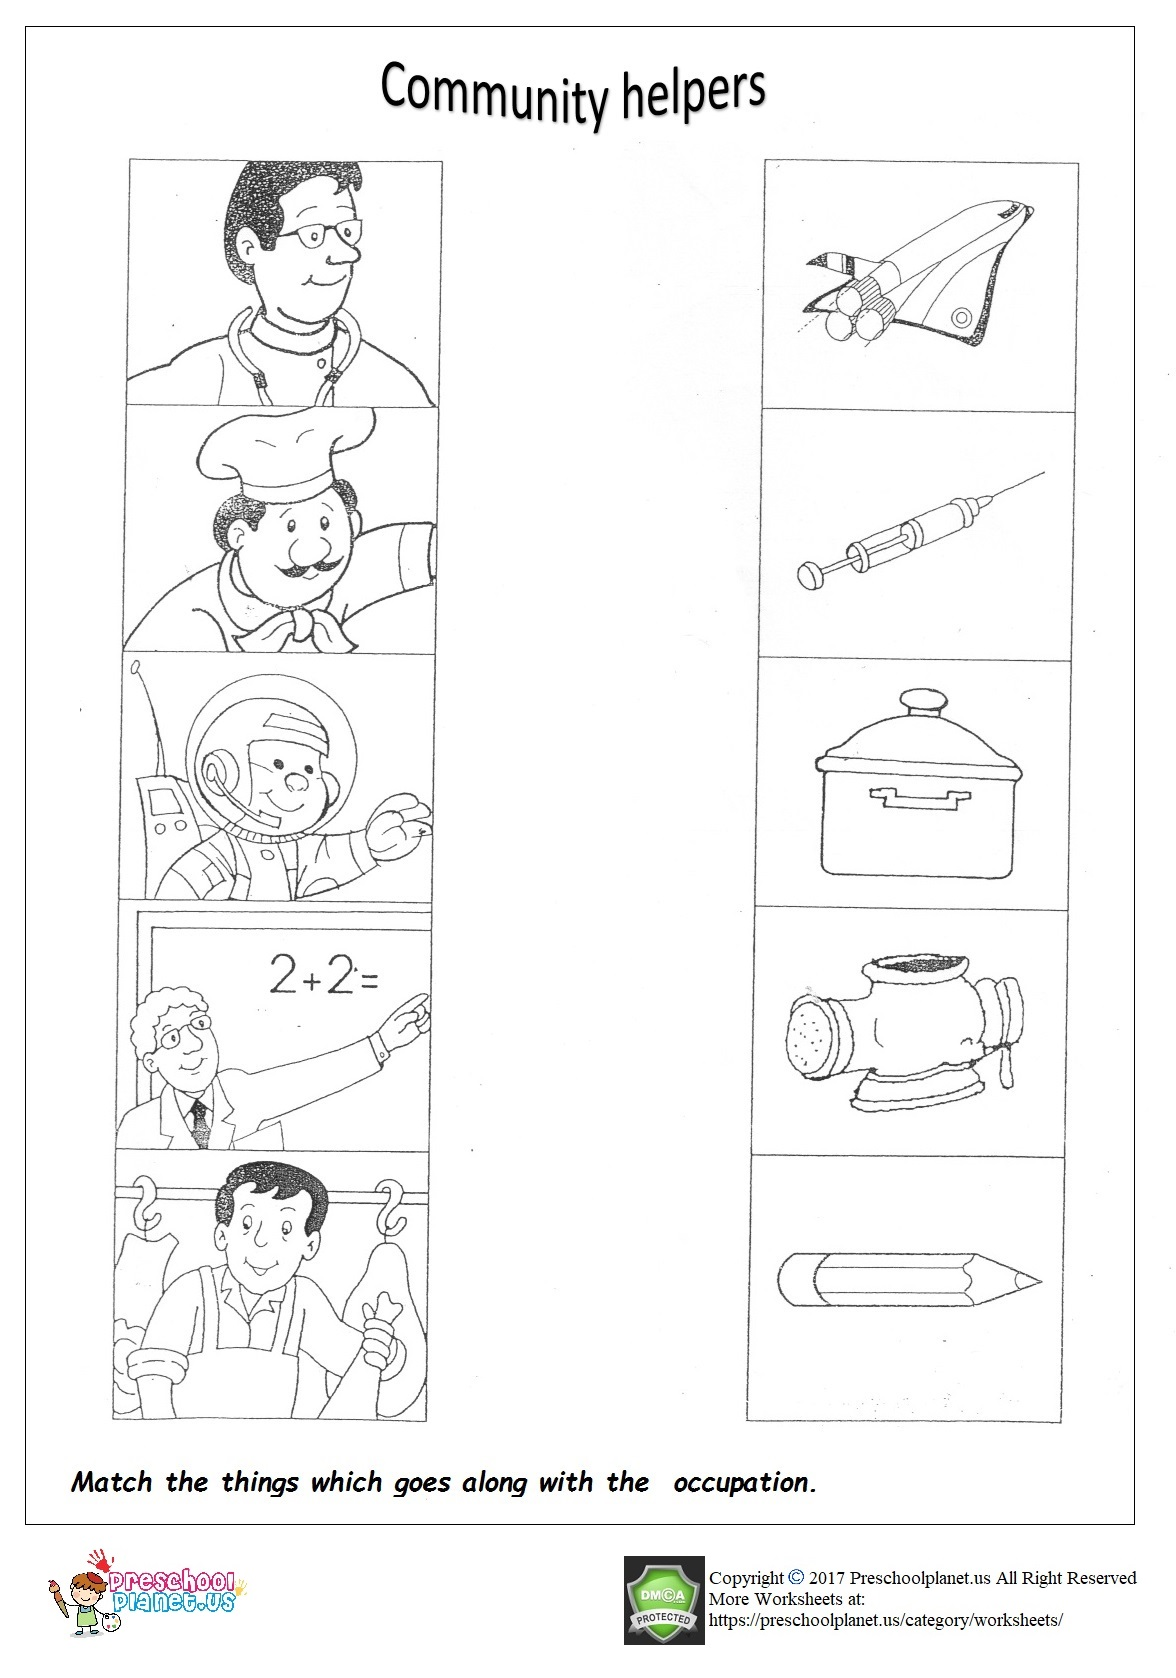 worksheet Community Helper Worksheets community helpers worksheet for kindergarten